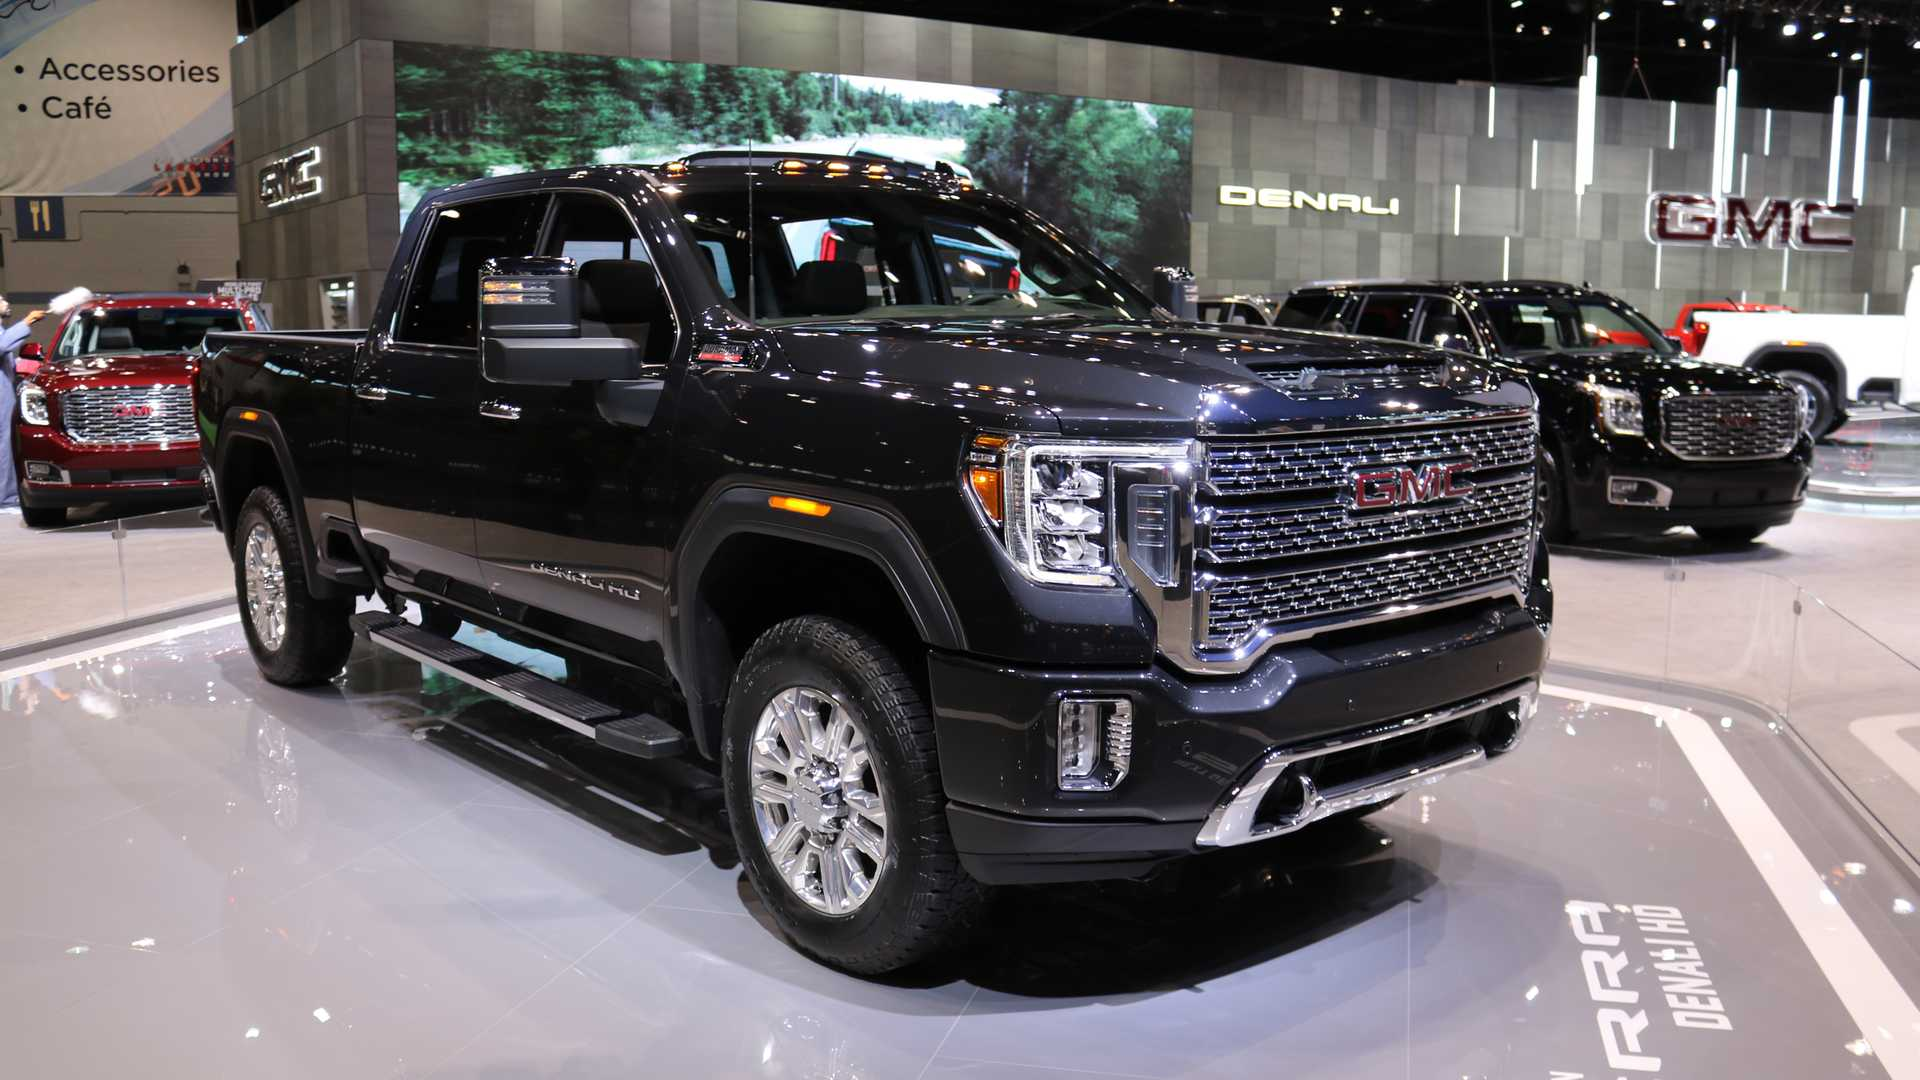 55 The Best 2020 Gmc Sierra 2500Hd Body Styles Review And Release Date